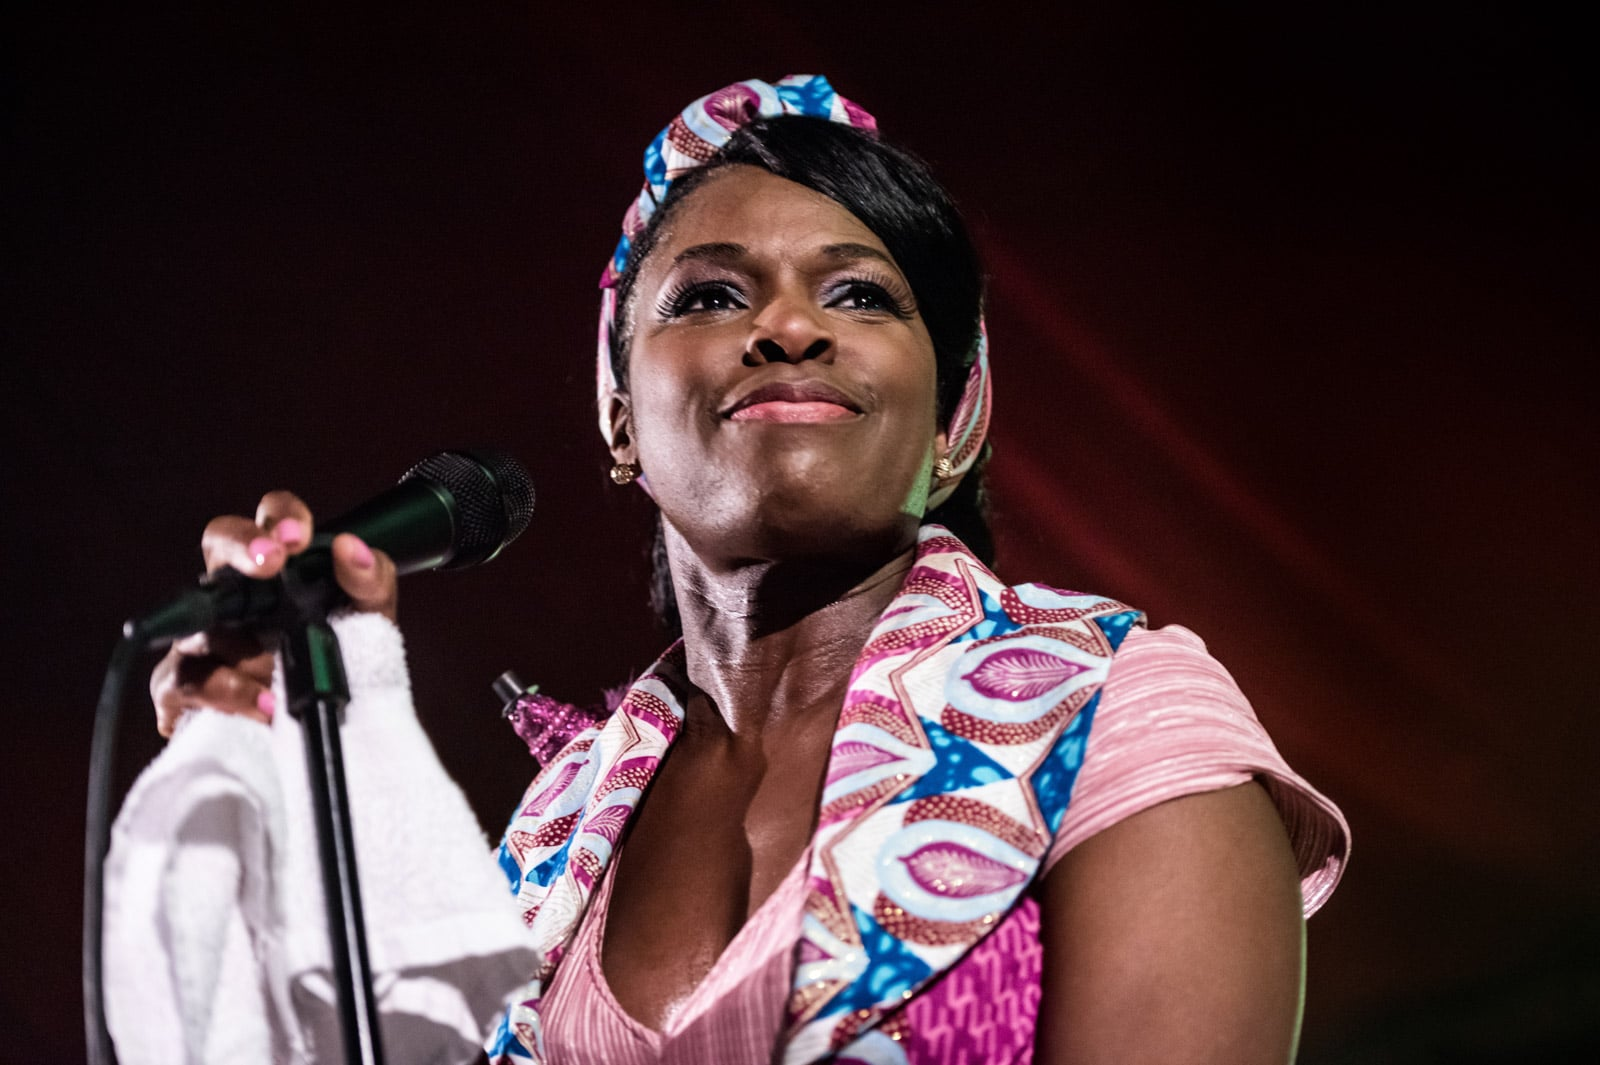 Ibibio_Sound_Machine_2016_030